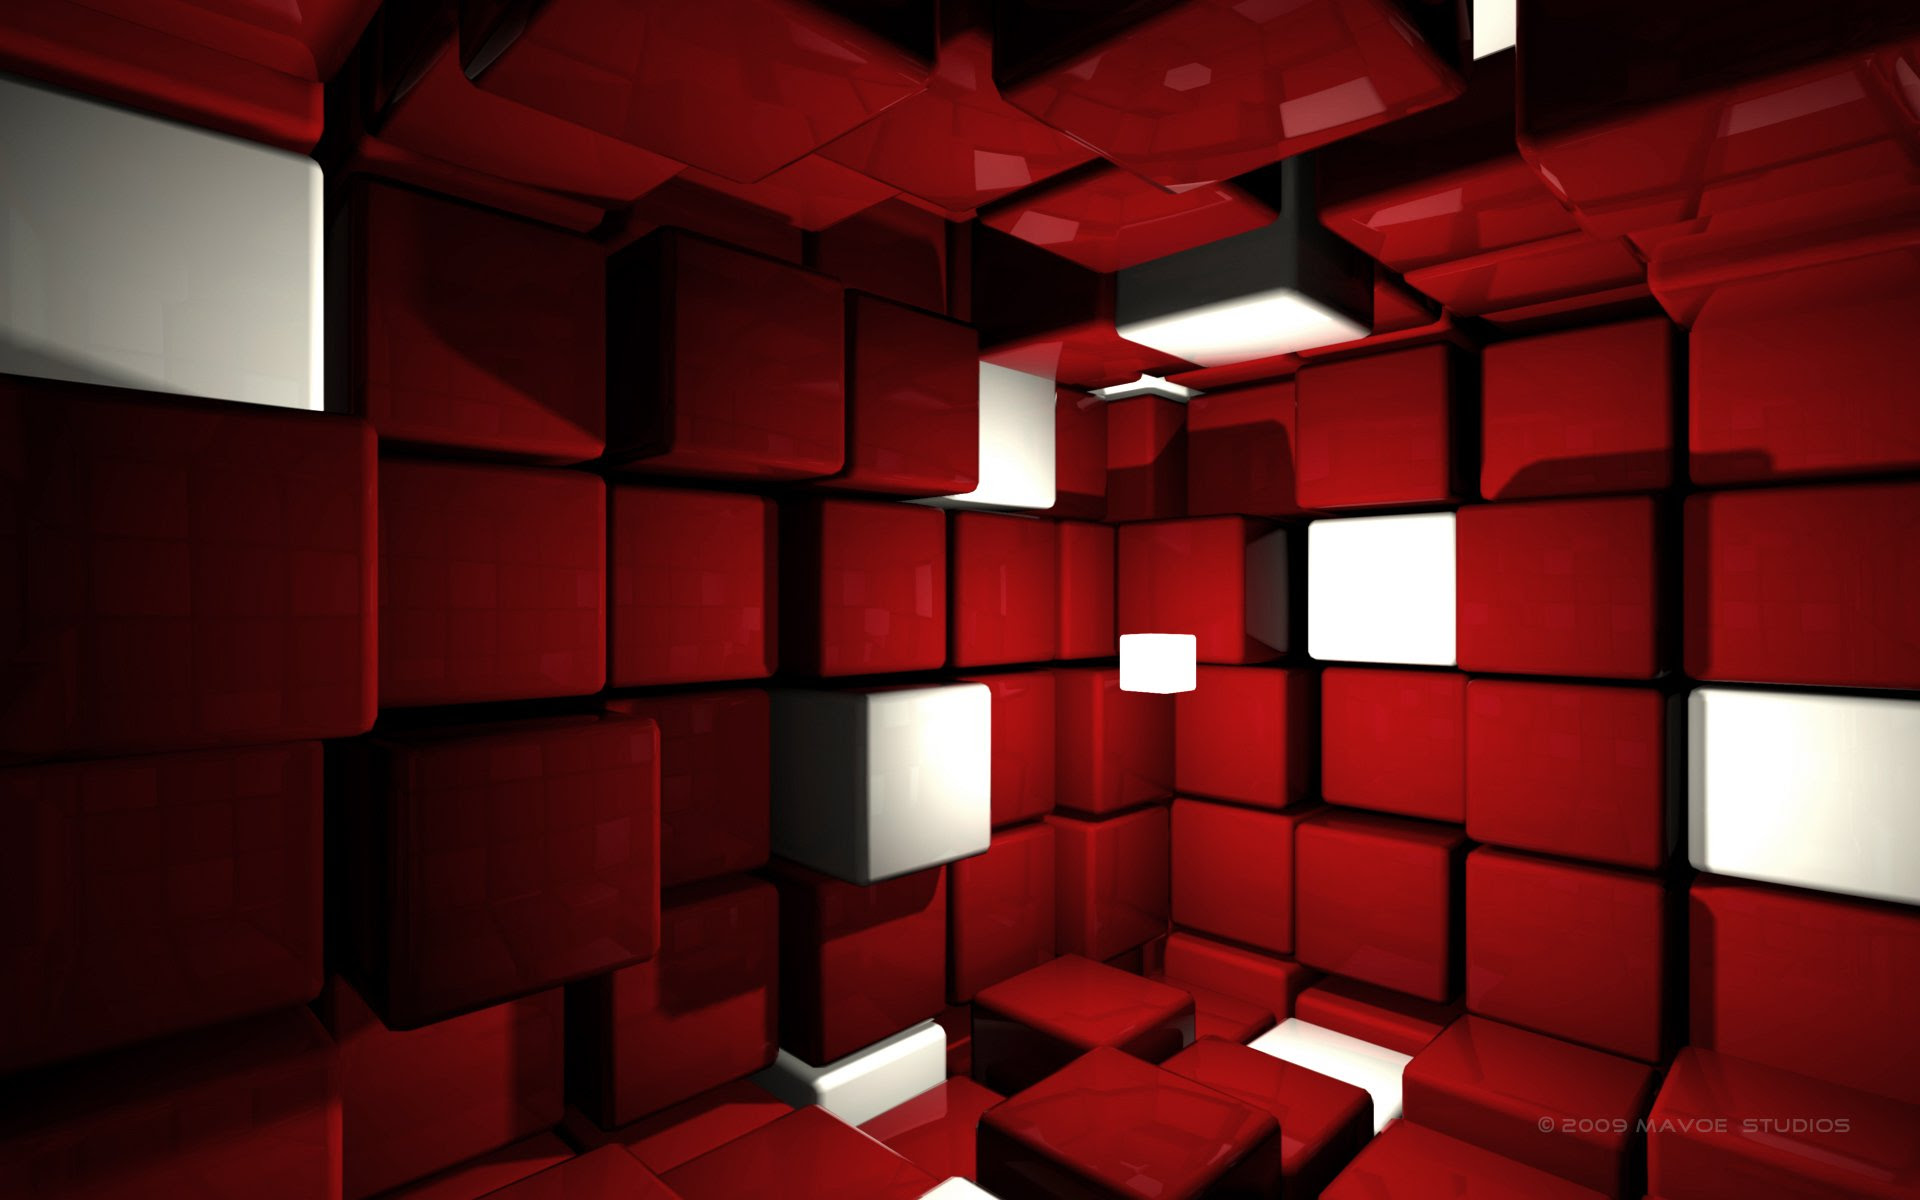 7000 Wallpaper 3d Red HD Paling Baru